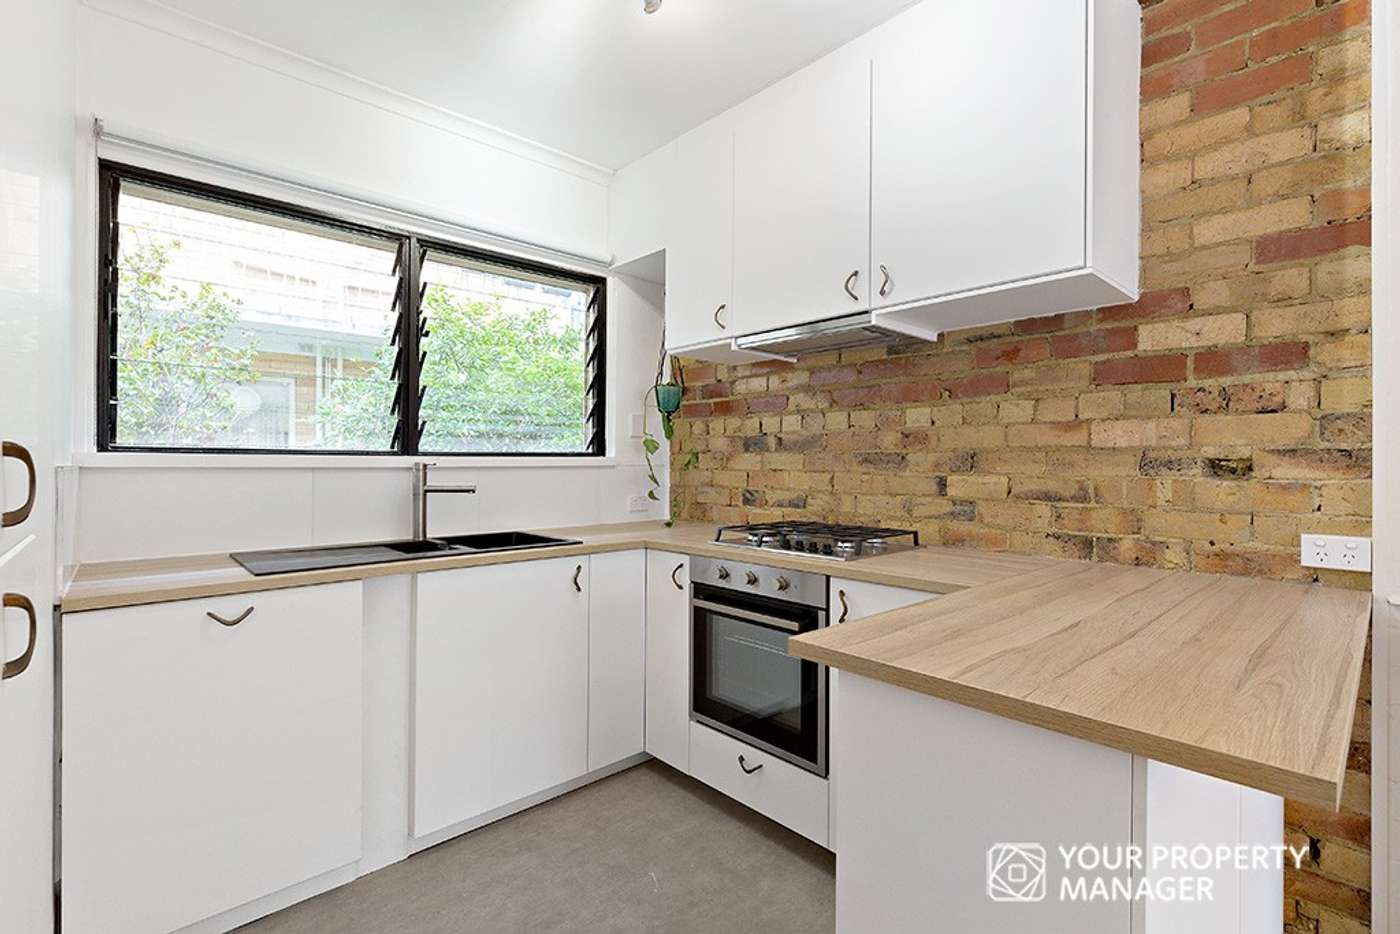 Main view of Homely apartment listing, 10/21 Bent Street, Bentleigh VIC 3204